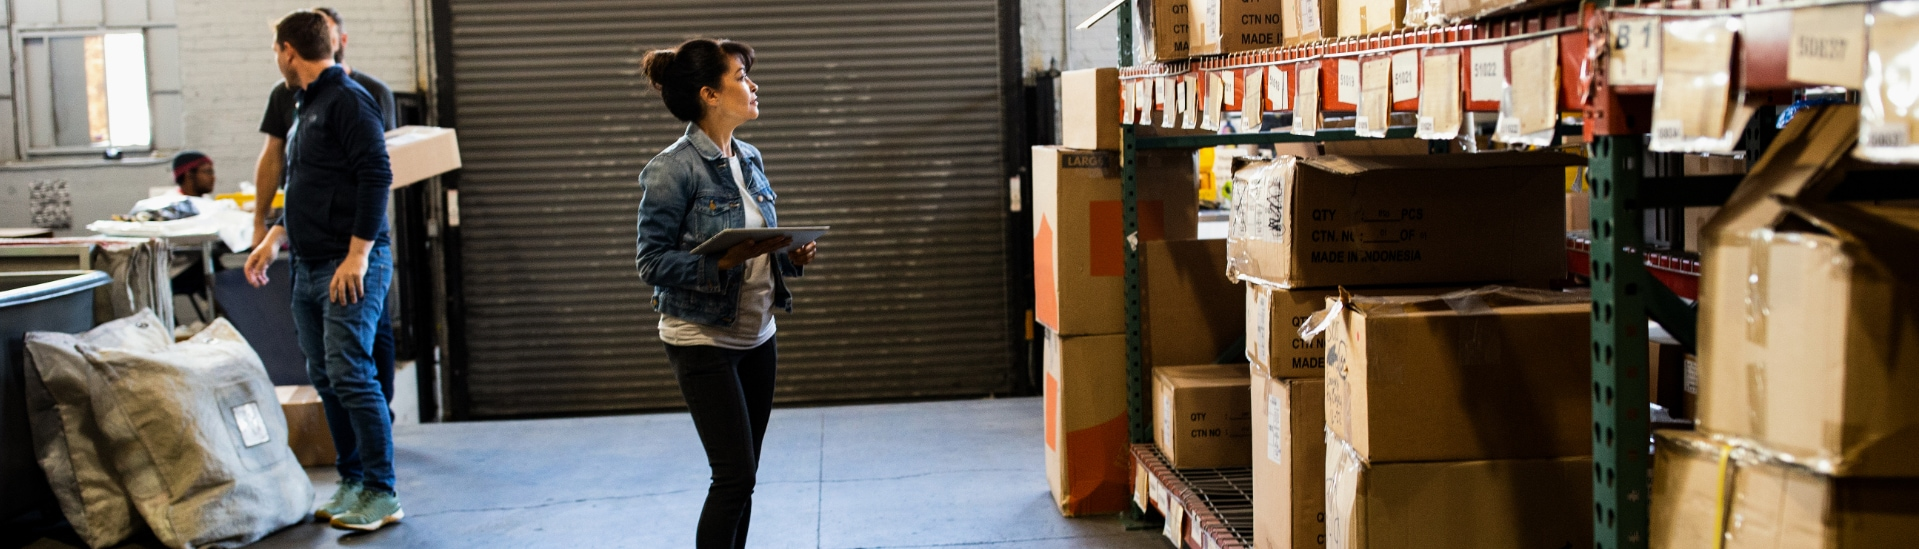 A person holding a tablet device, looking at boxes on a large shelf in a warehouse.